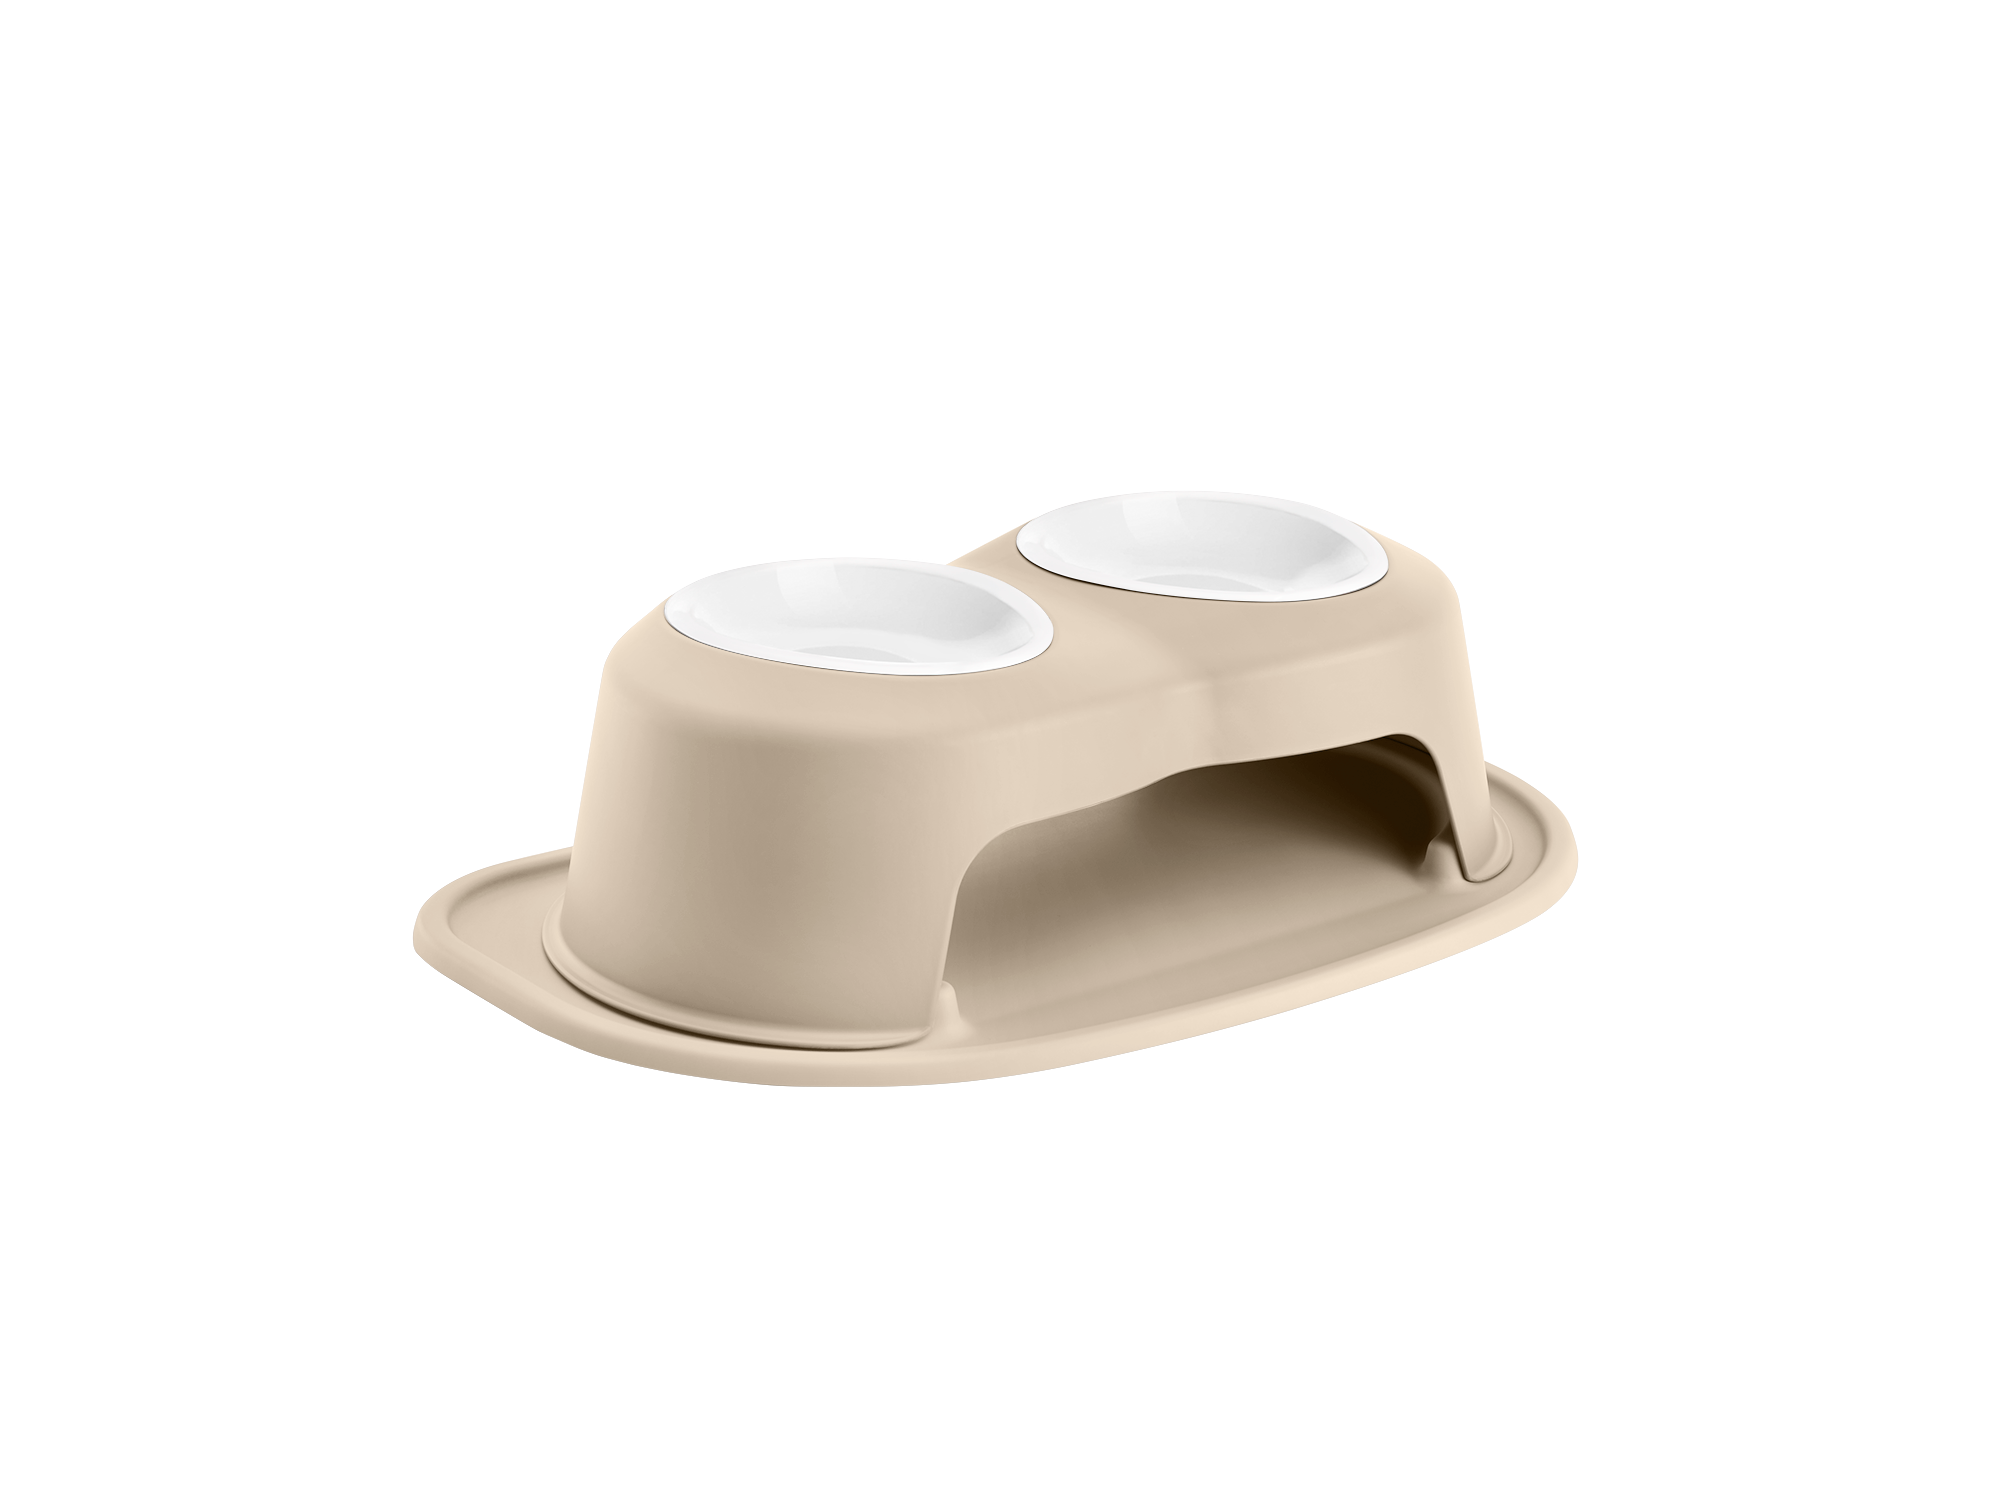 Double High Tan Pet Feeding System with 32-ounce bowls. This stand is 6 inches tall and is ideal for small to medium sized pets.